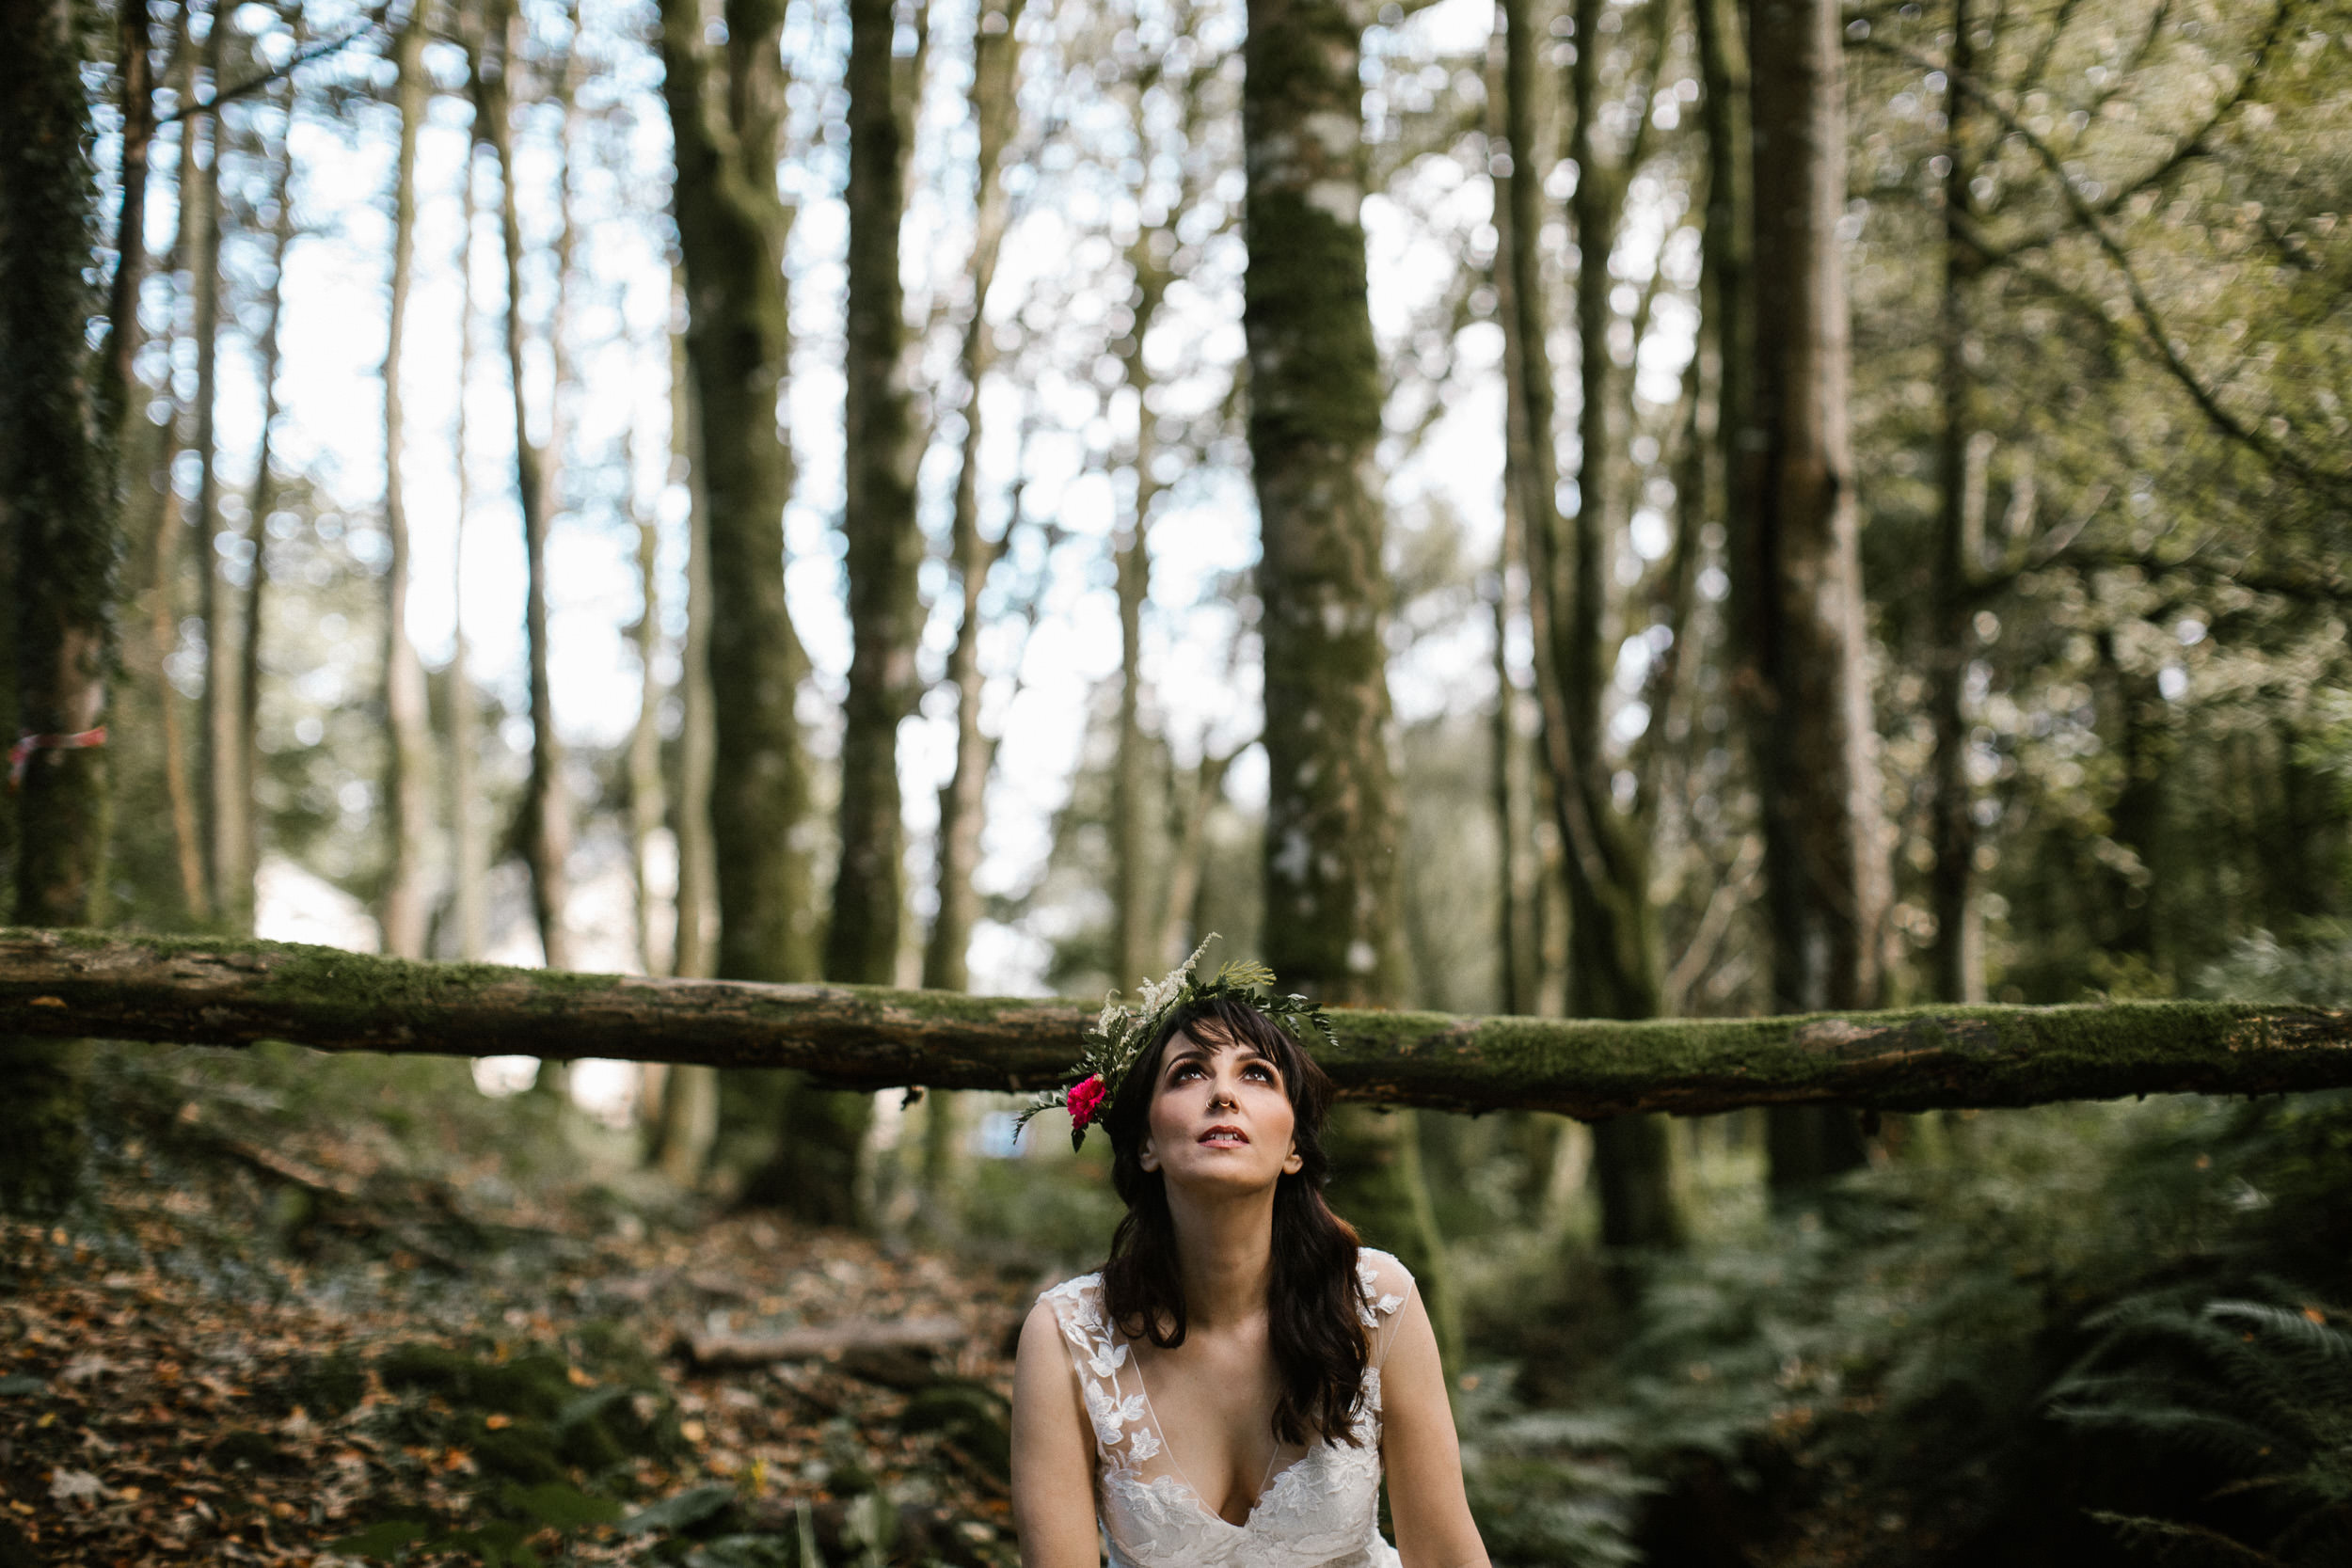 clairebyrnephotography-styled-shoot-huntingbrook-gardens-inspiration-weddings-woods-forest-66.jpg